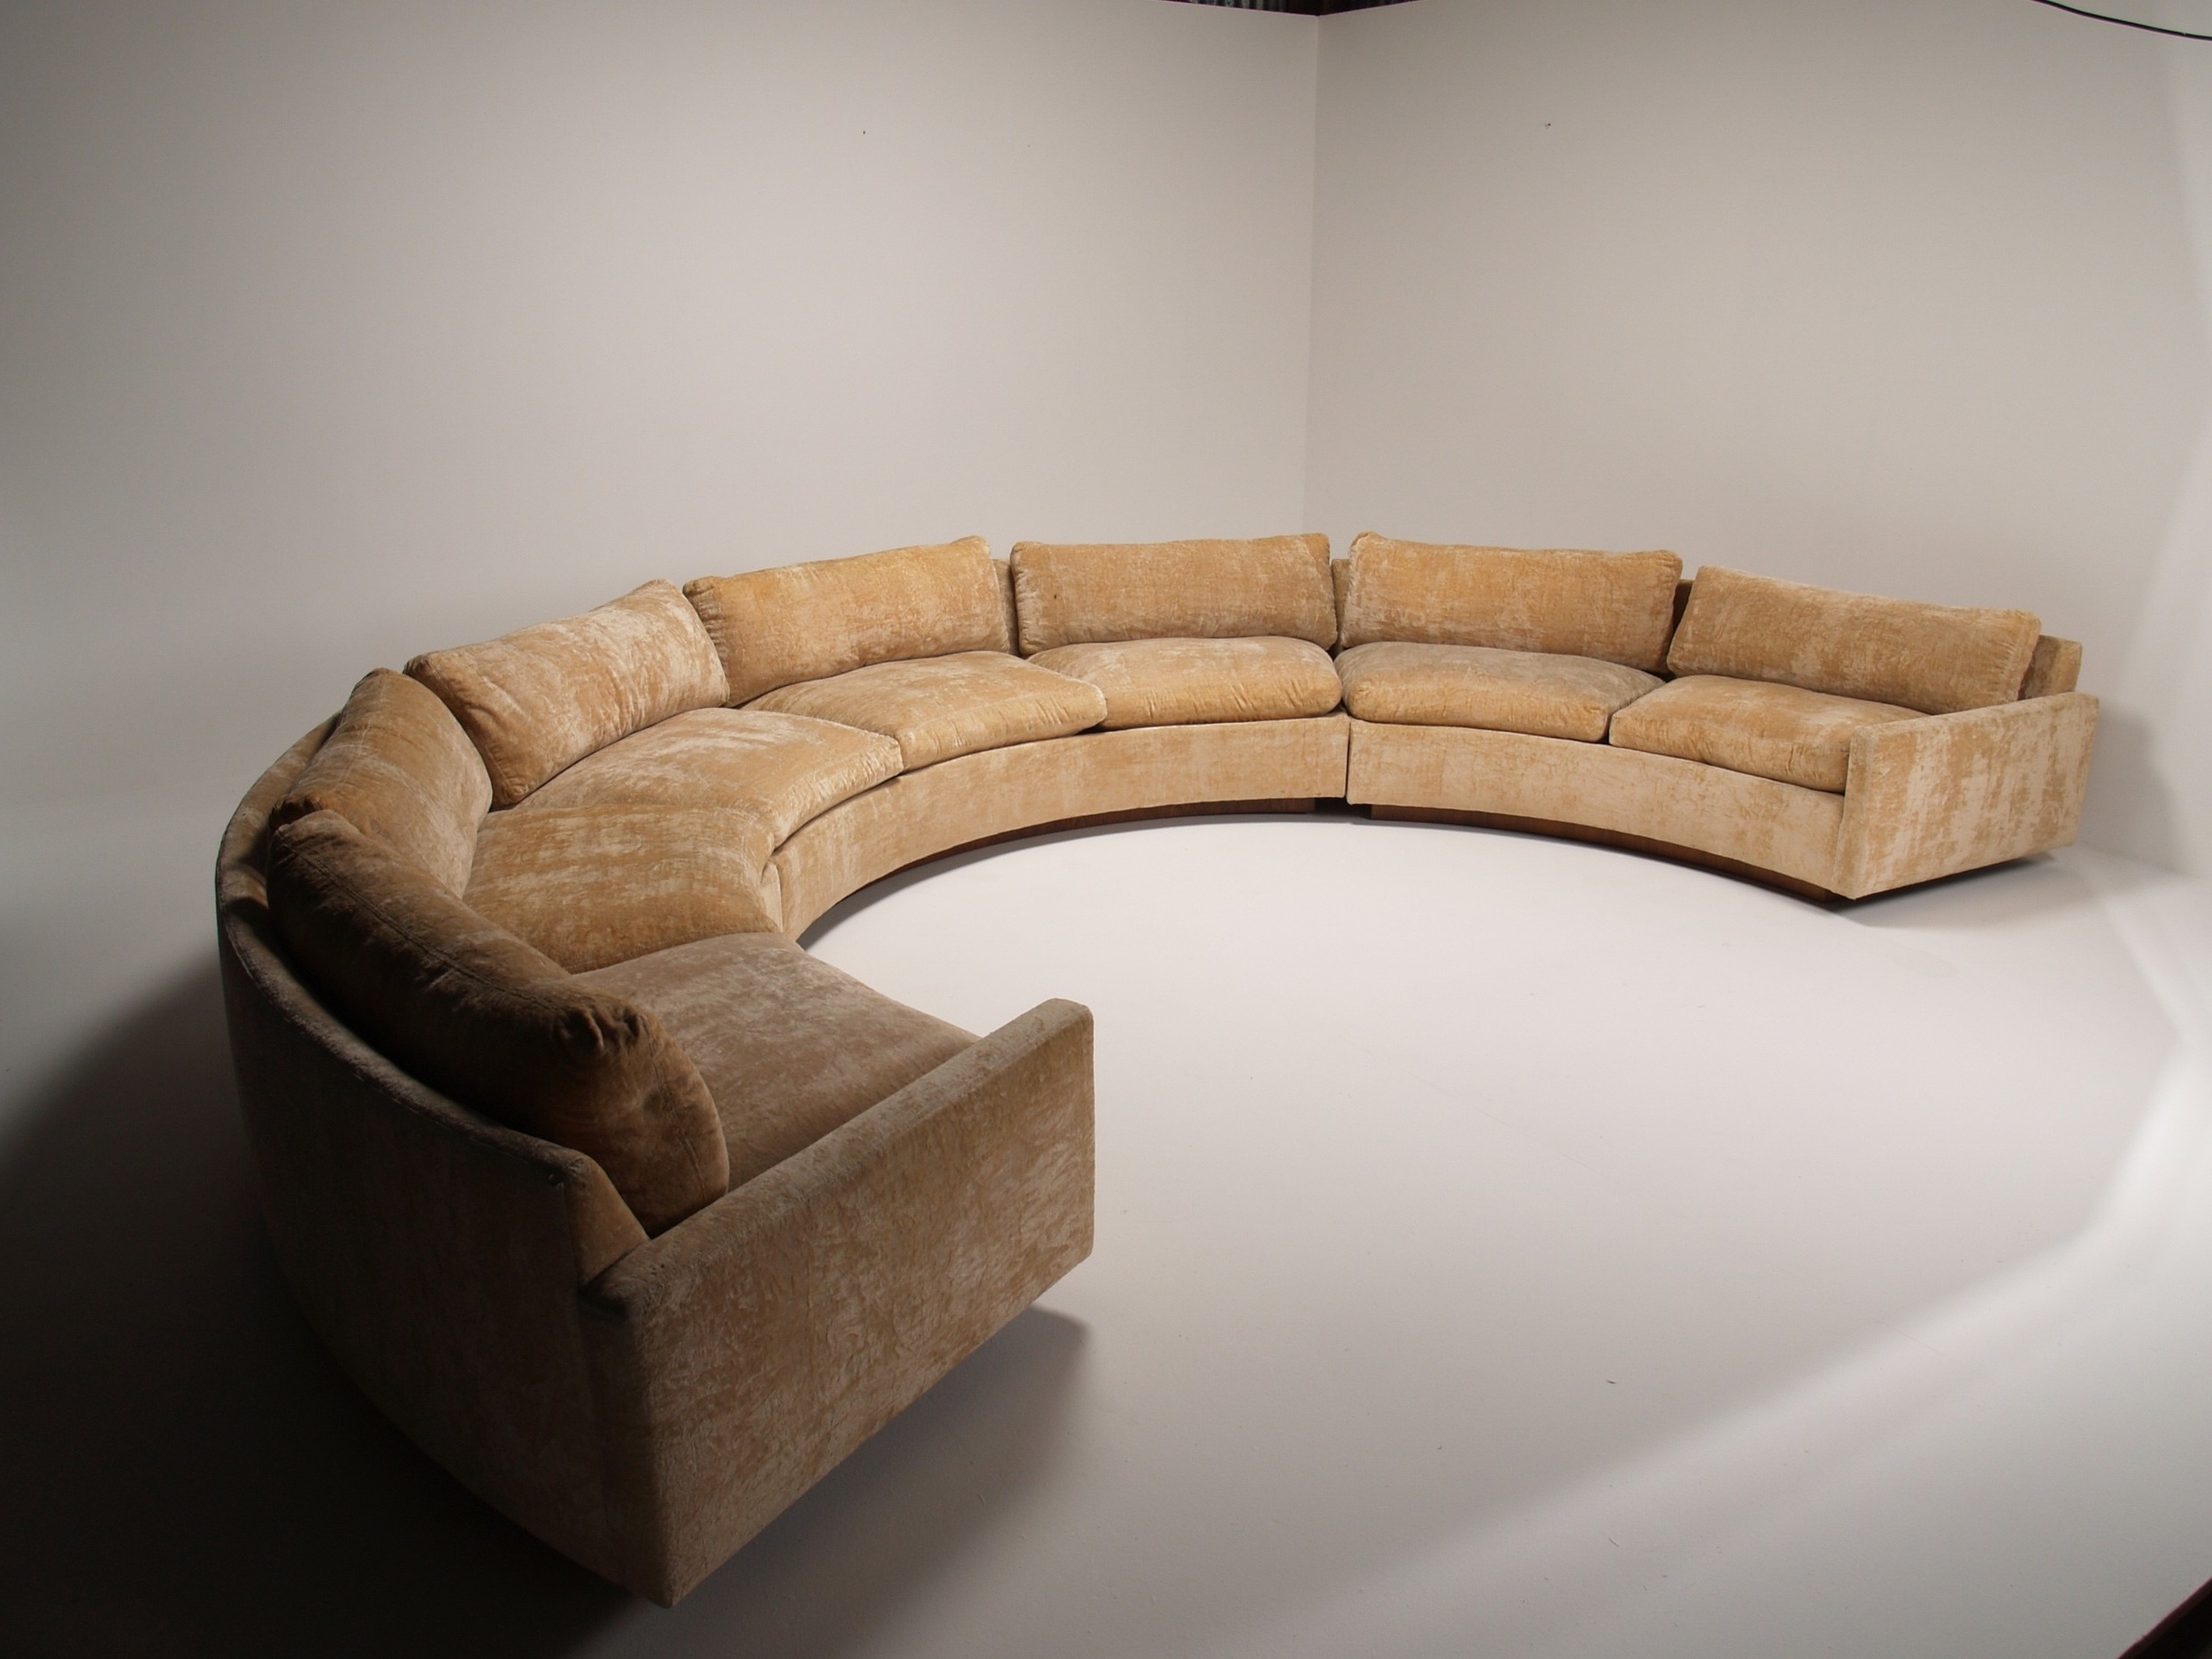 Popular Round Sectional Sofas Intended For Modern Curved Sofas With Couches Rounded Sectional Leather For (View 8 of 15)